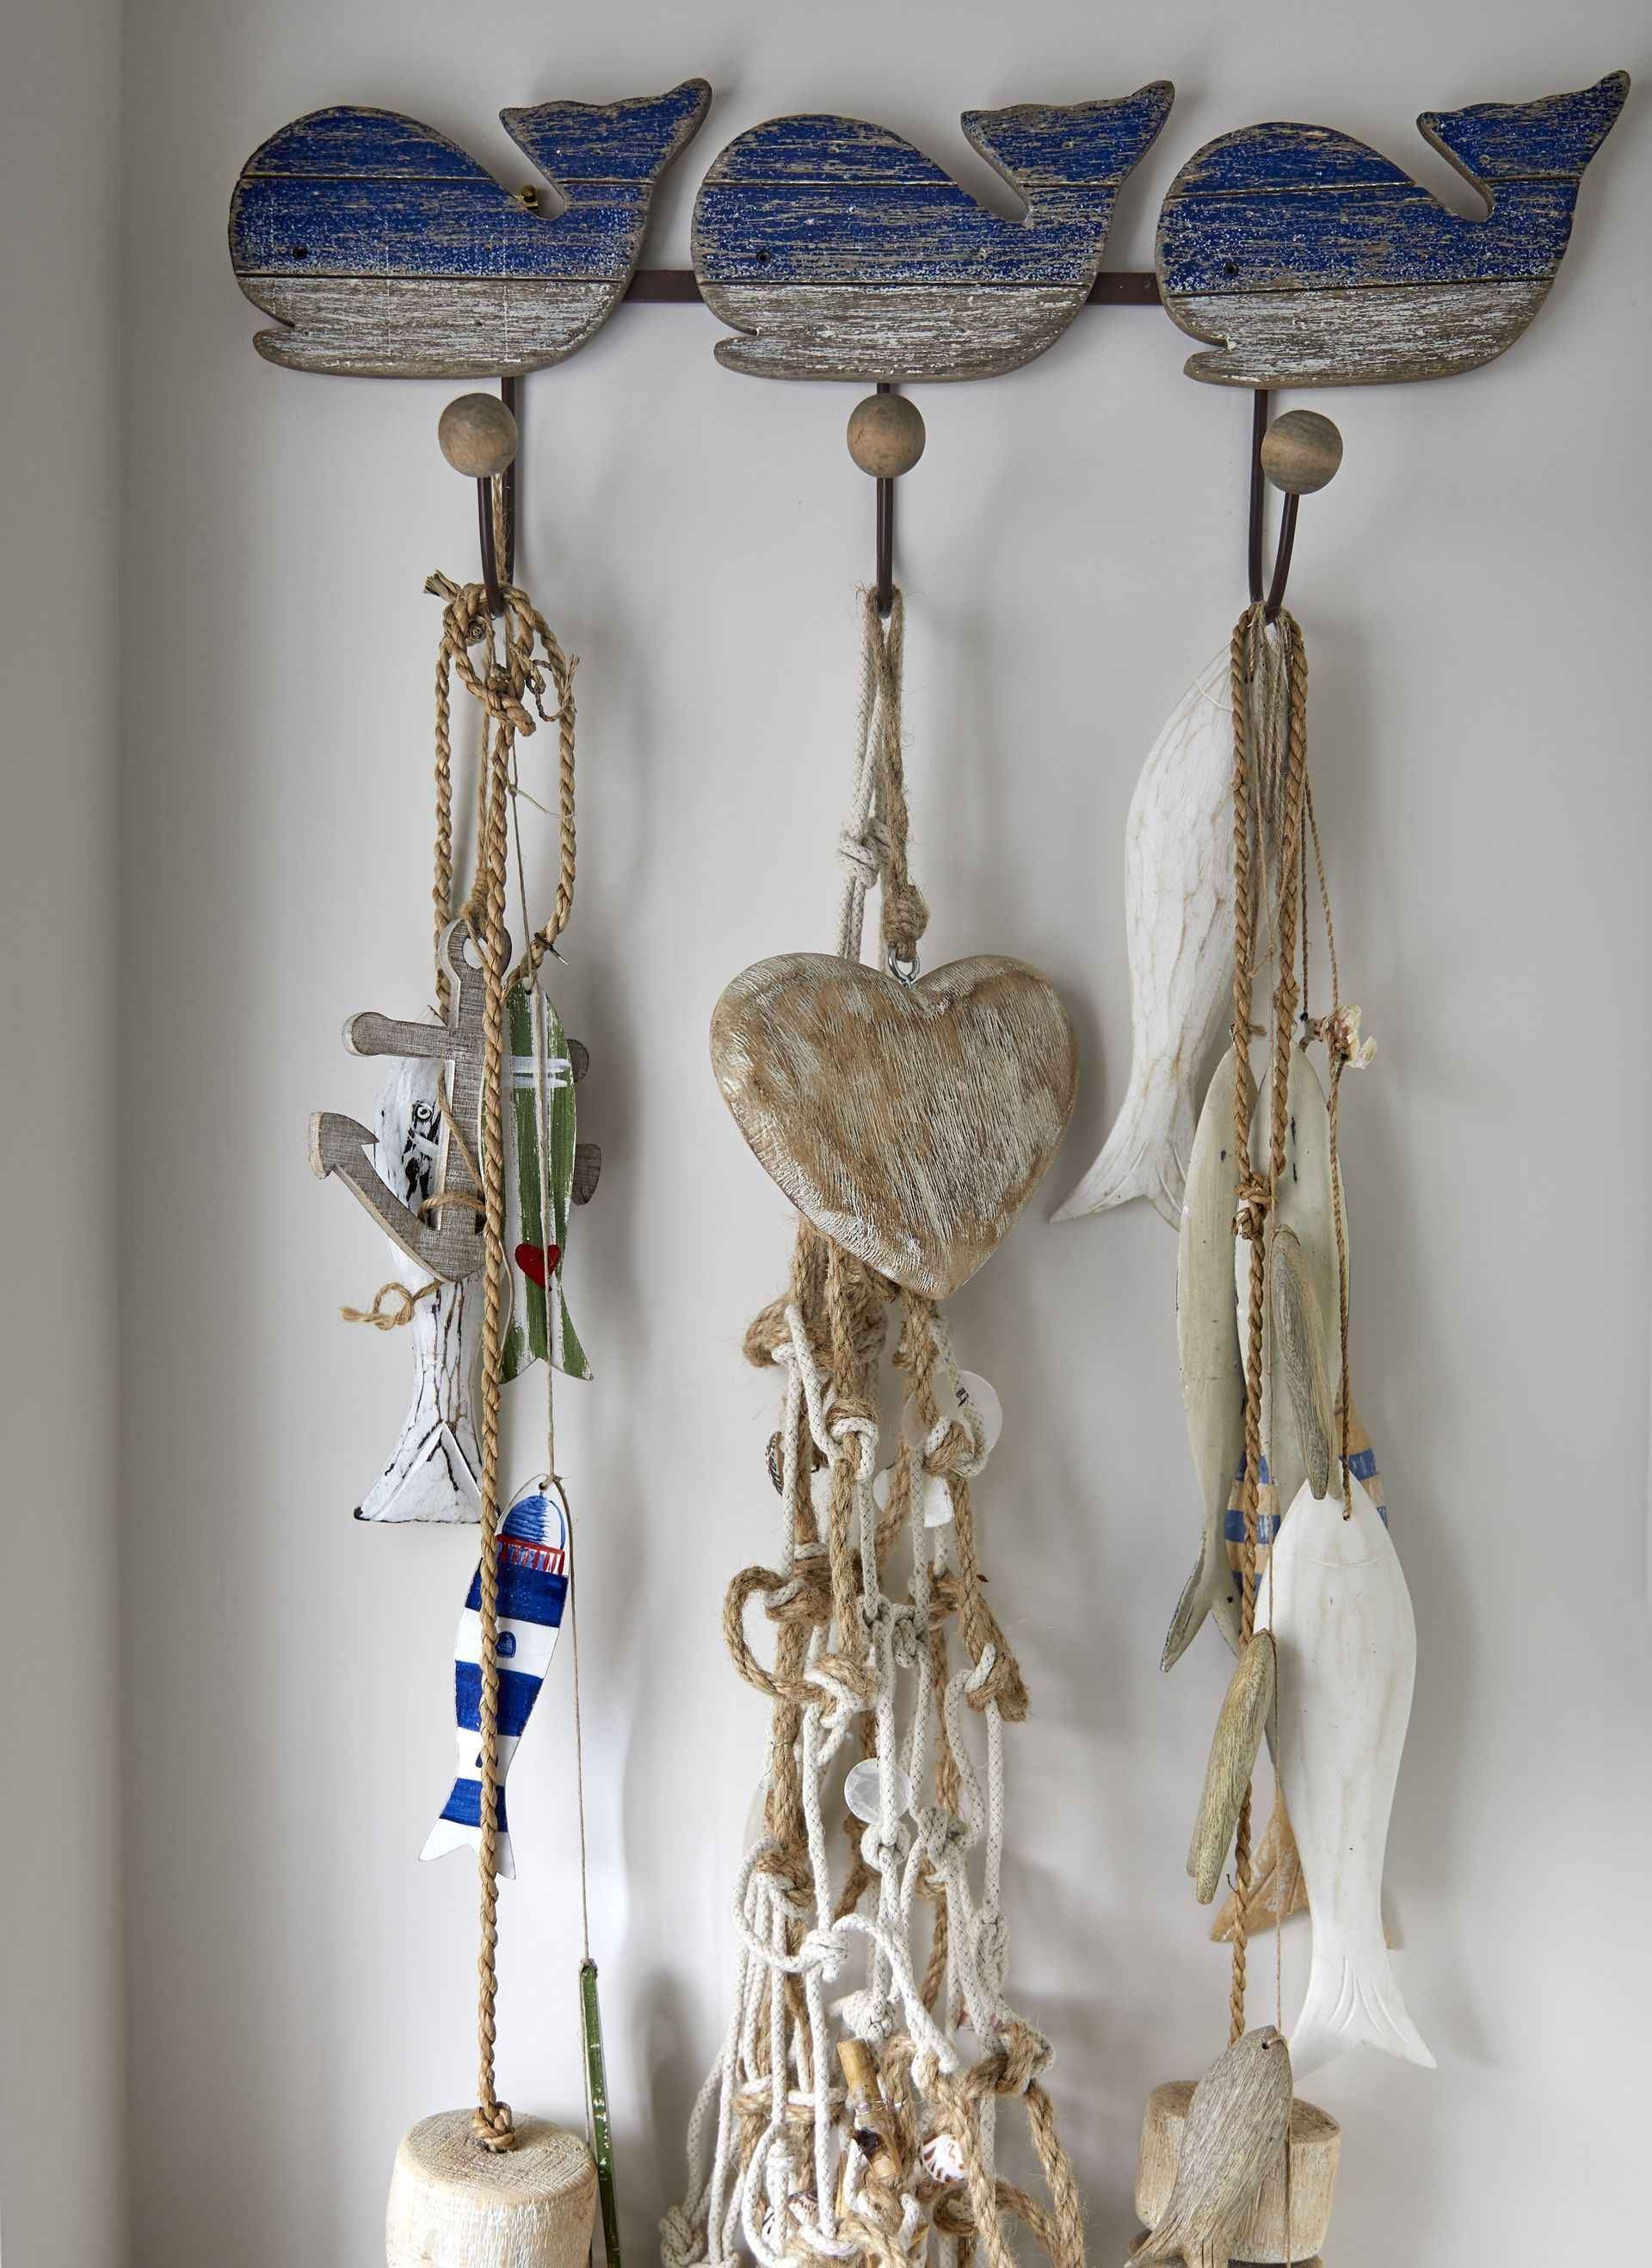 Hanging trinkets on the wall of the pirate room of mountain ash house